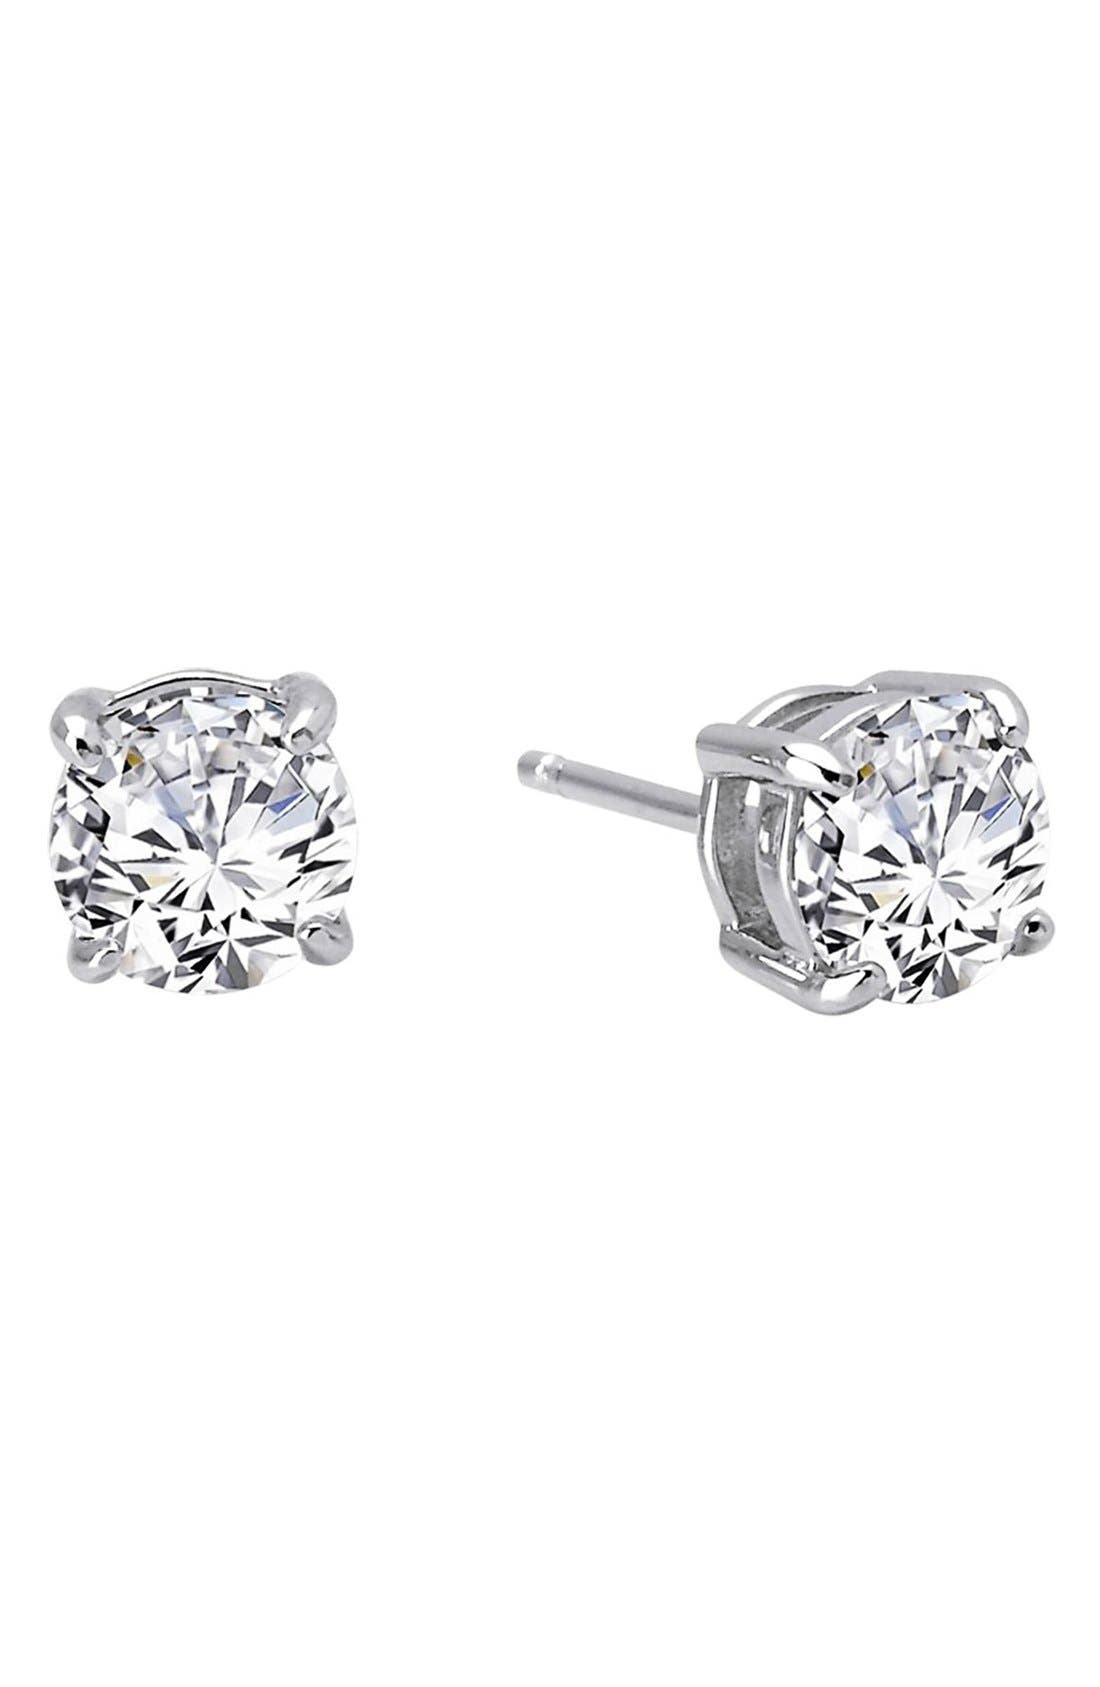 'Lassaire' Four Prong Stud Earrings,                             Main thumbnail 1, color,                             SILVER